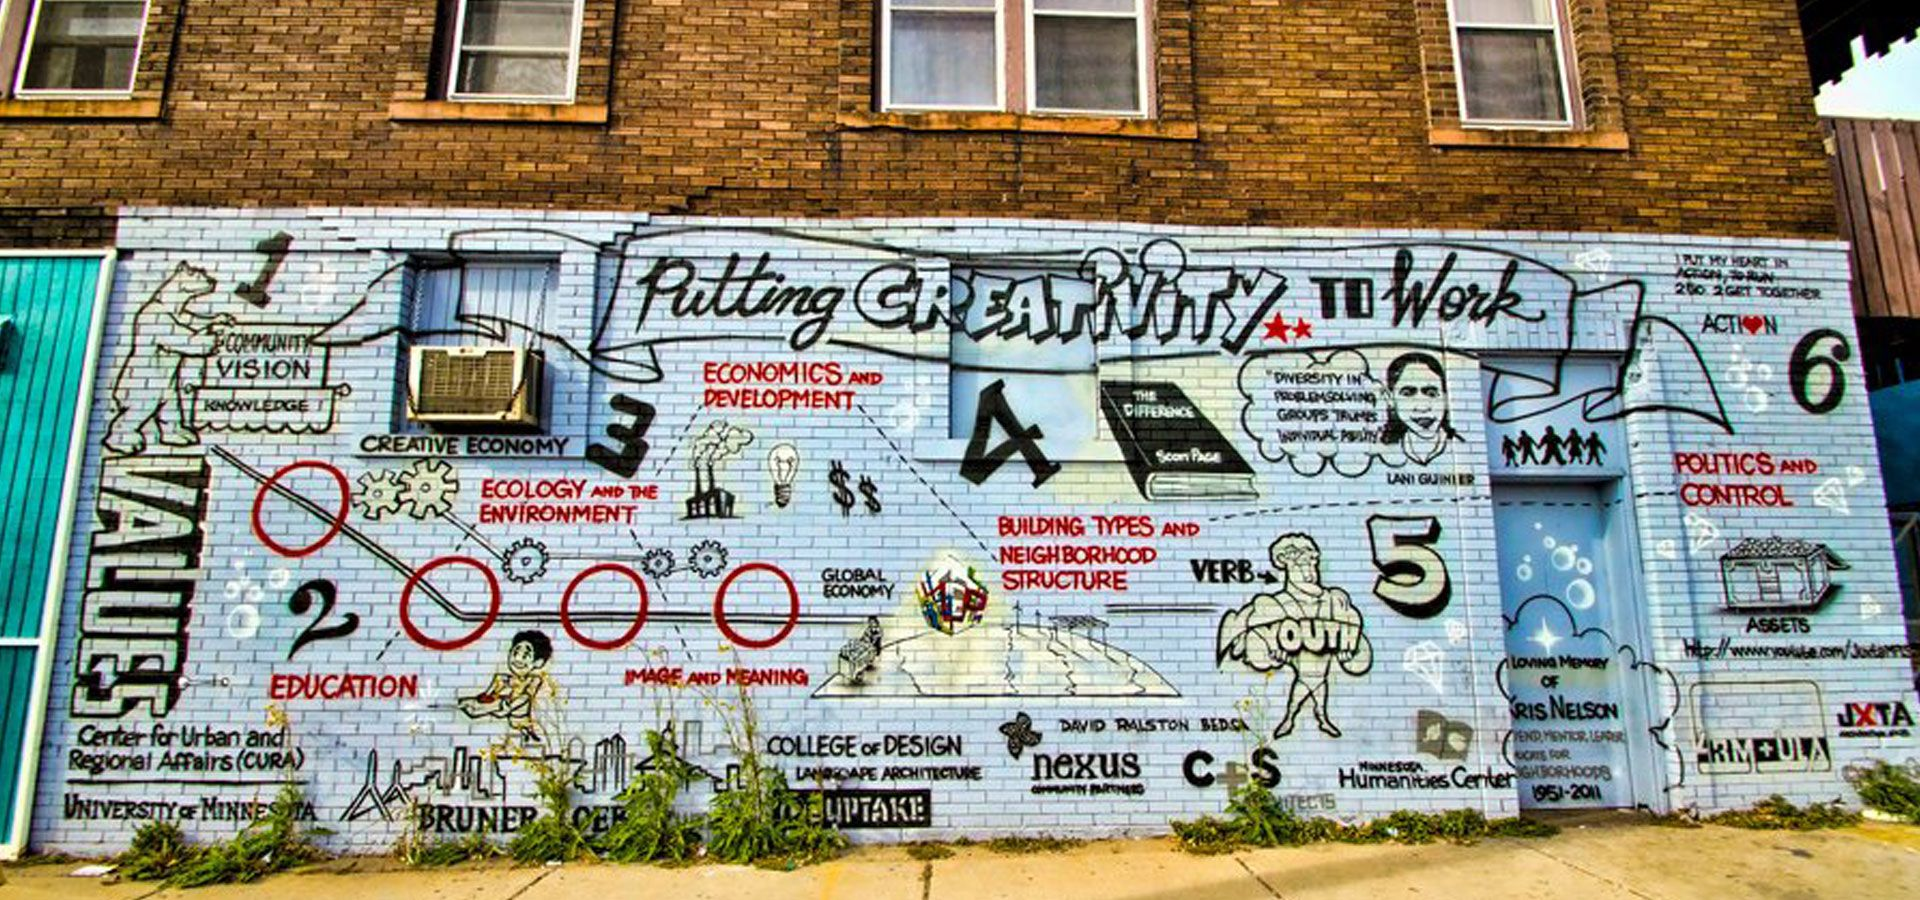 A mural with several illustrations and sayings including putting creativity to work